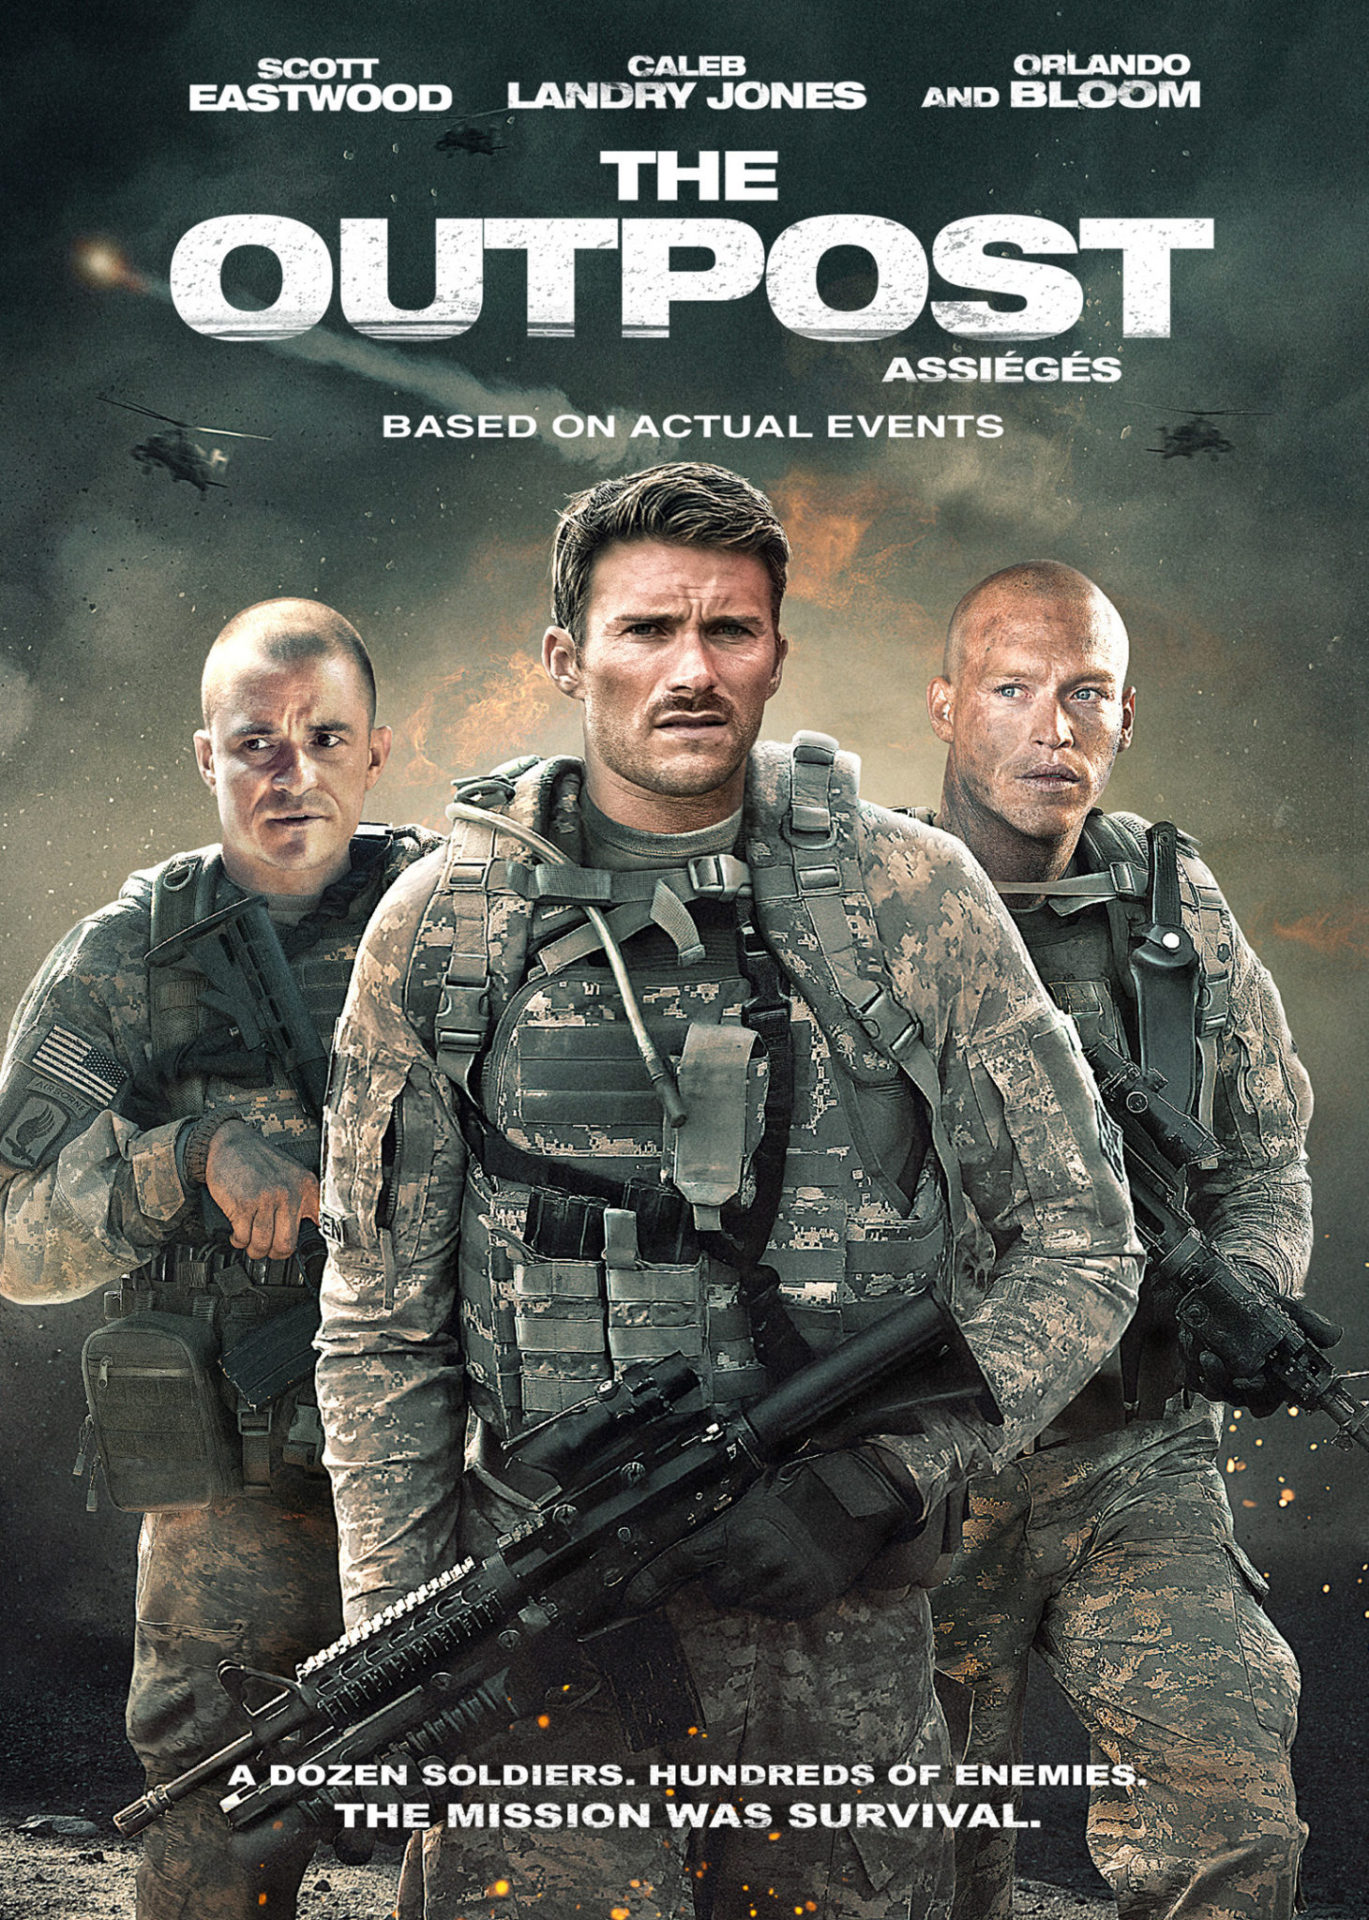 The Outpost Film